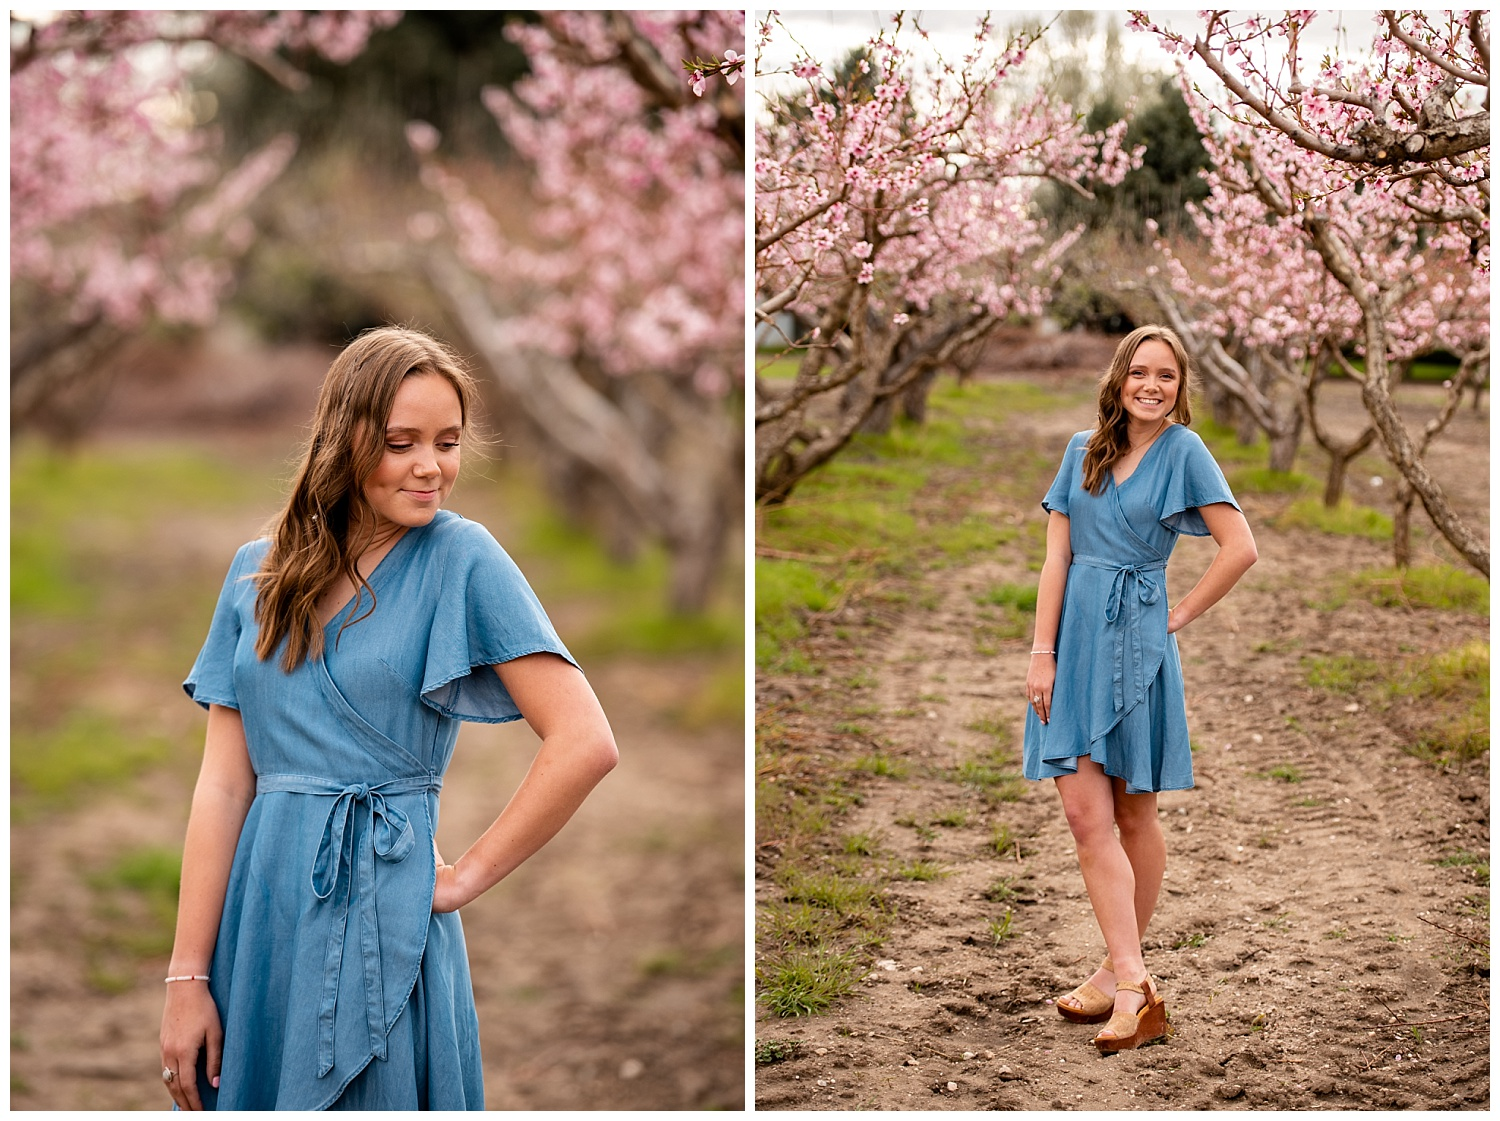 Utah Senior Photographer, Dan Page Photography, Tunnel Springs North Salt Lake Senior Portraits (1).jpg